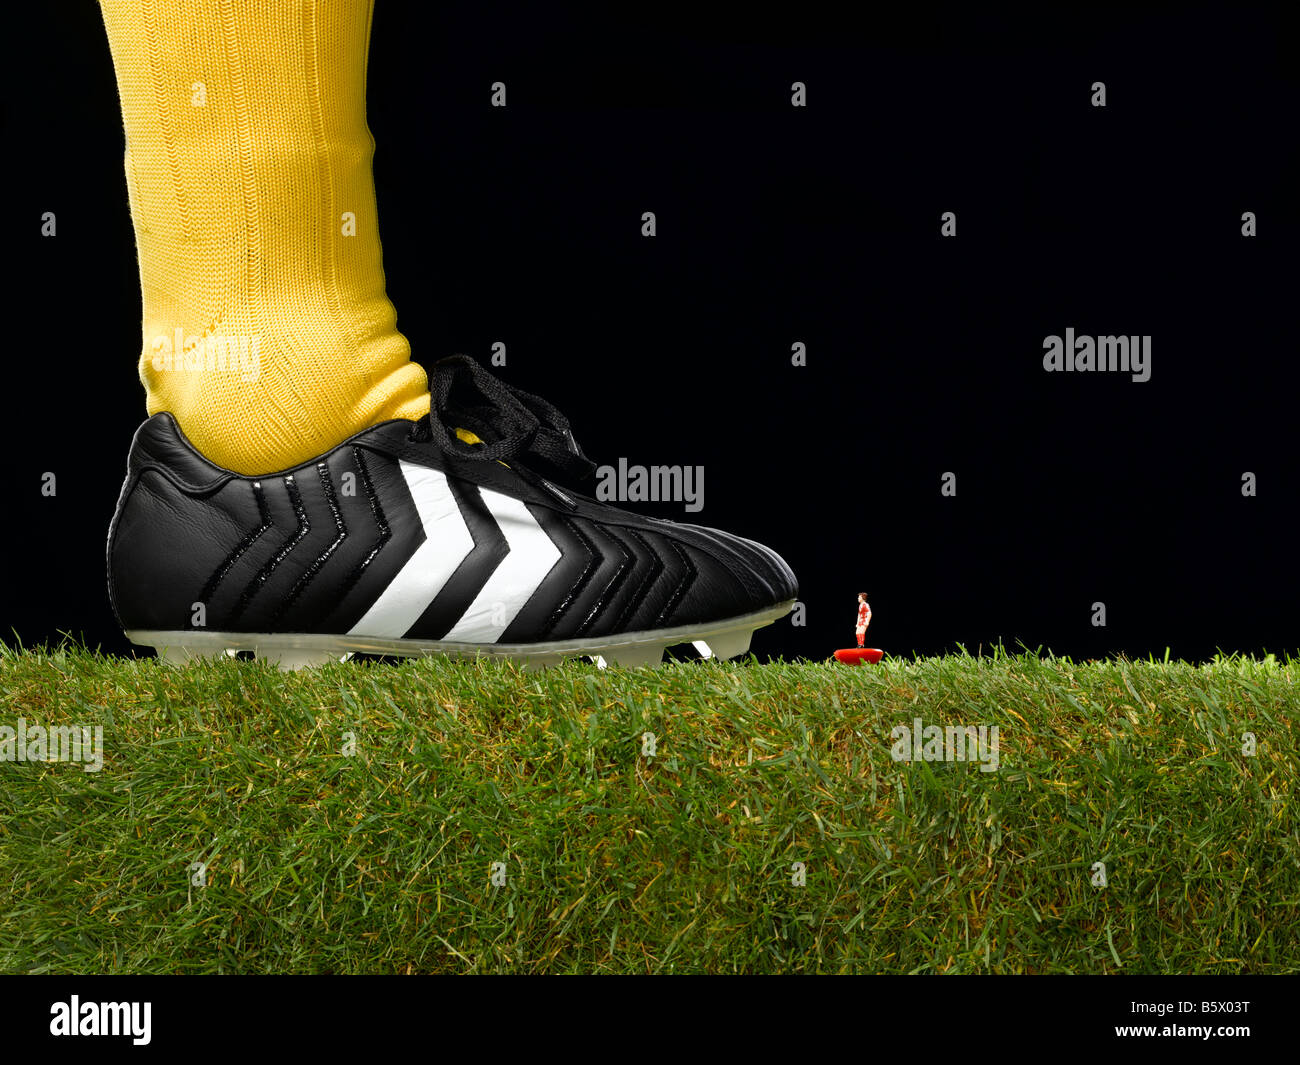 David v Goliath in a football setting, - Stock Image